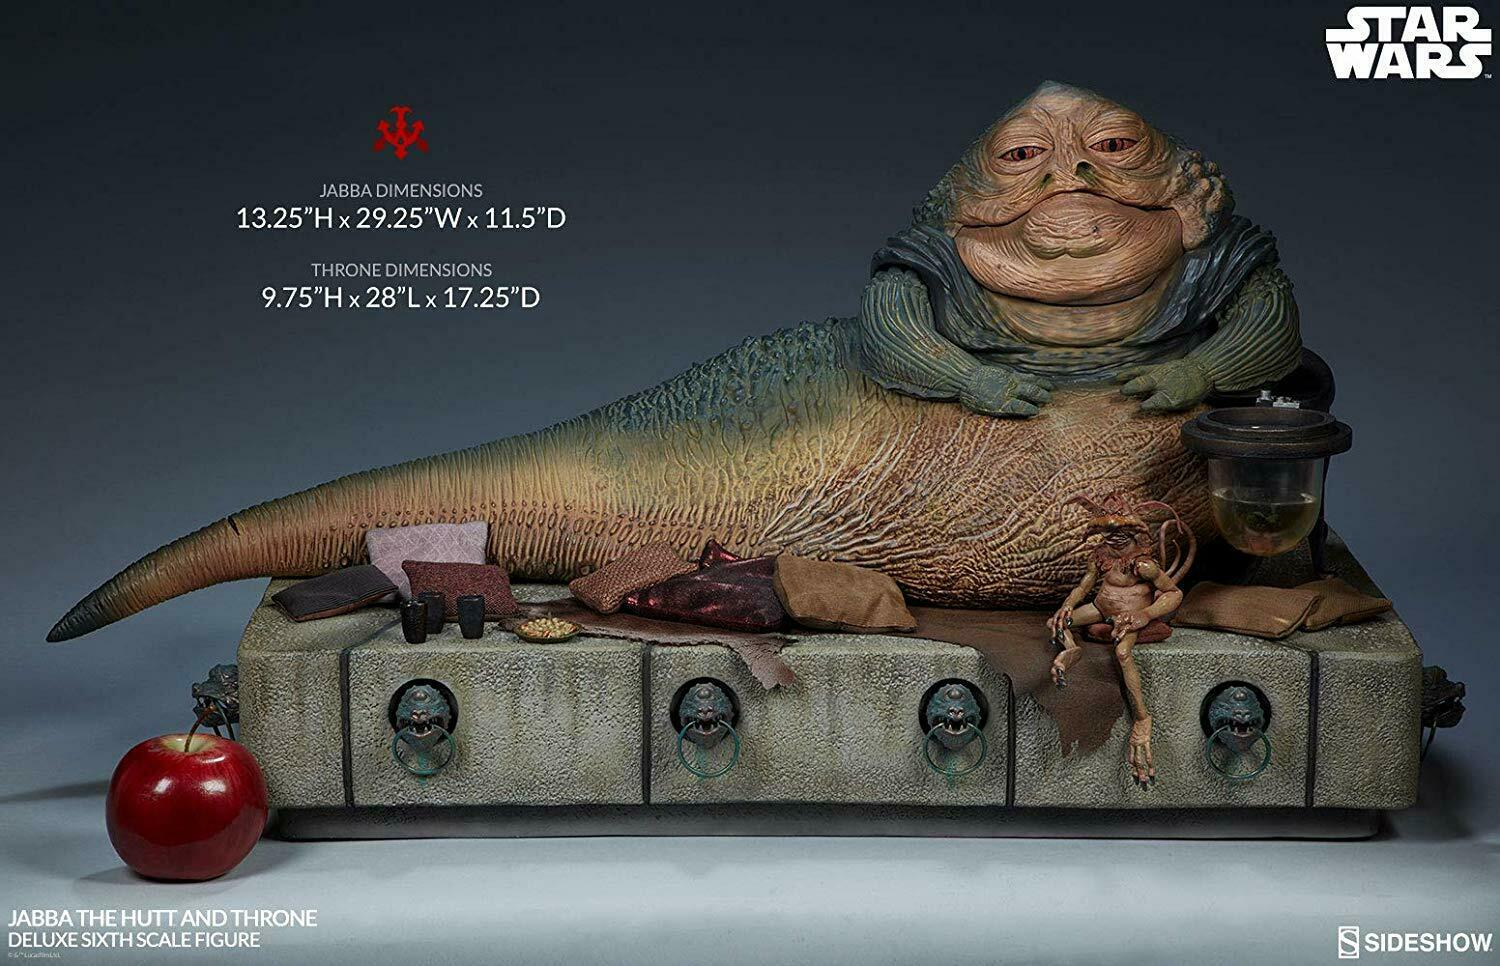 1 6 Scale Star Wars Jabba the Hutt and Throne Deluxe Sideshow 100410